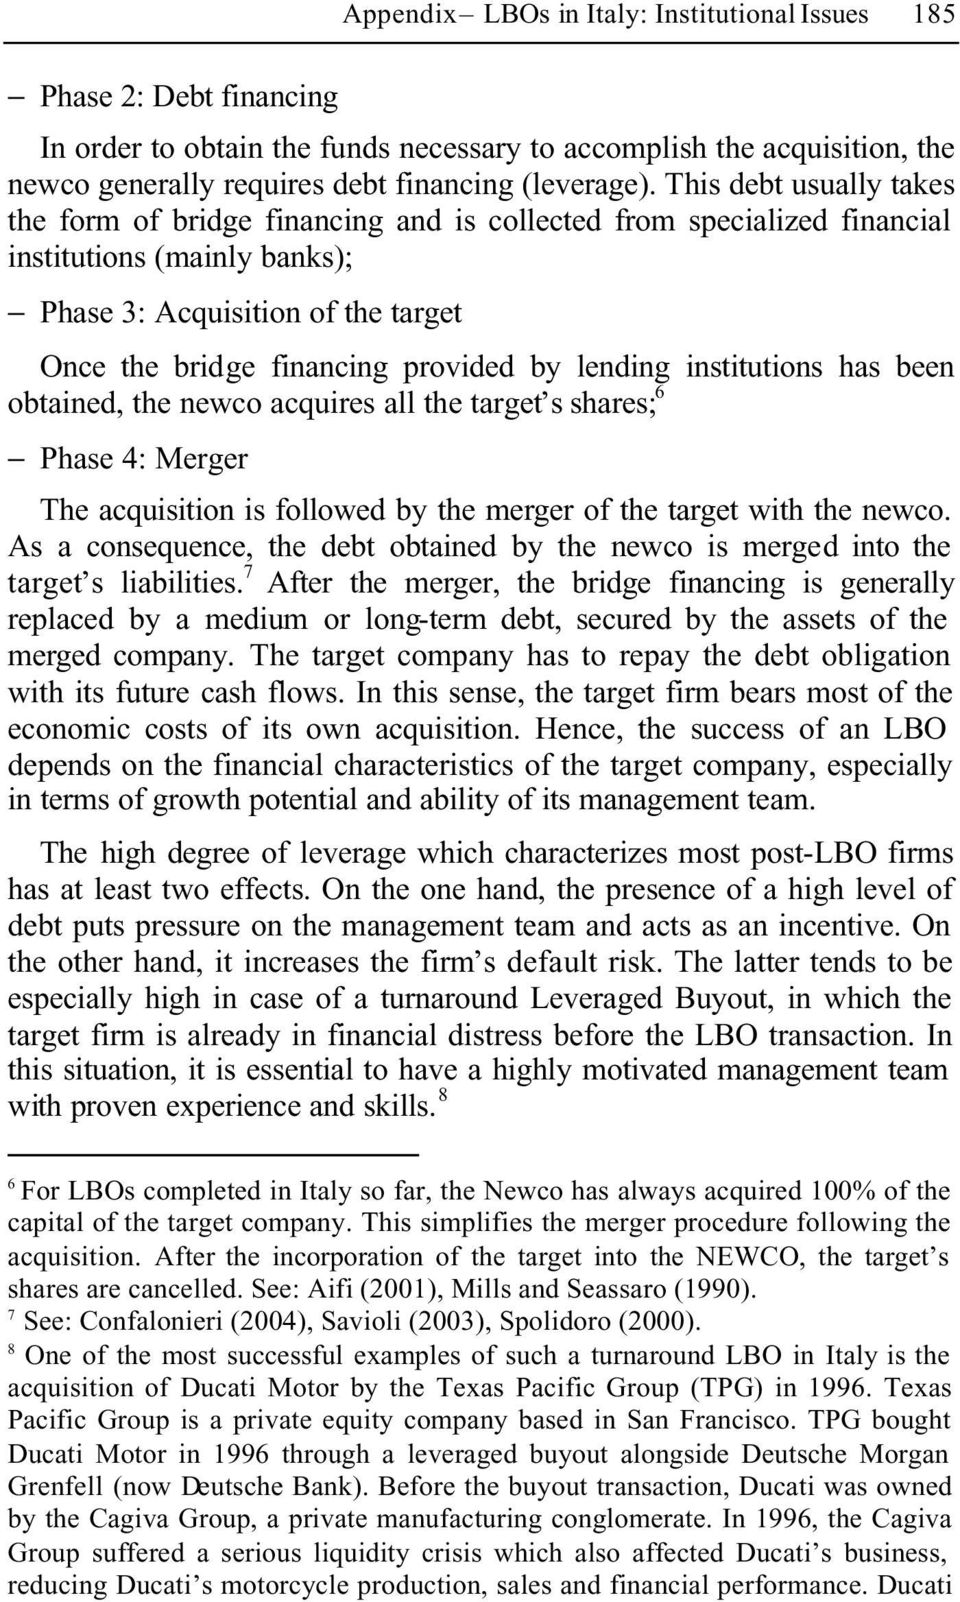 lending institutions has been obtained, the newco acquires all the target s shares; 6 Phase 4: Merger The acquisition is followed by the merger of the target with the newco.